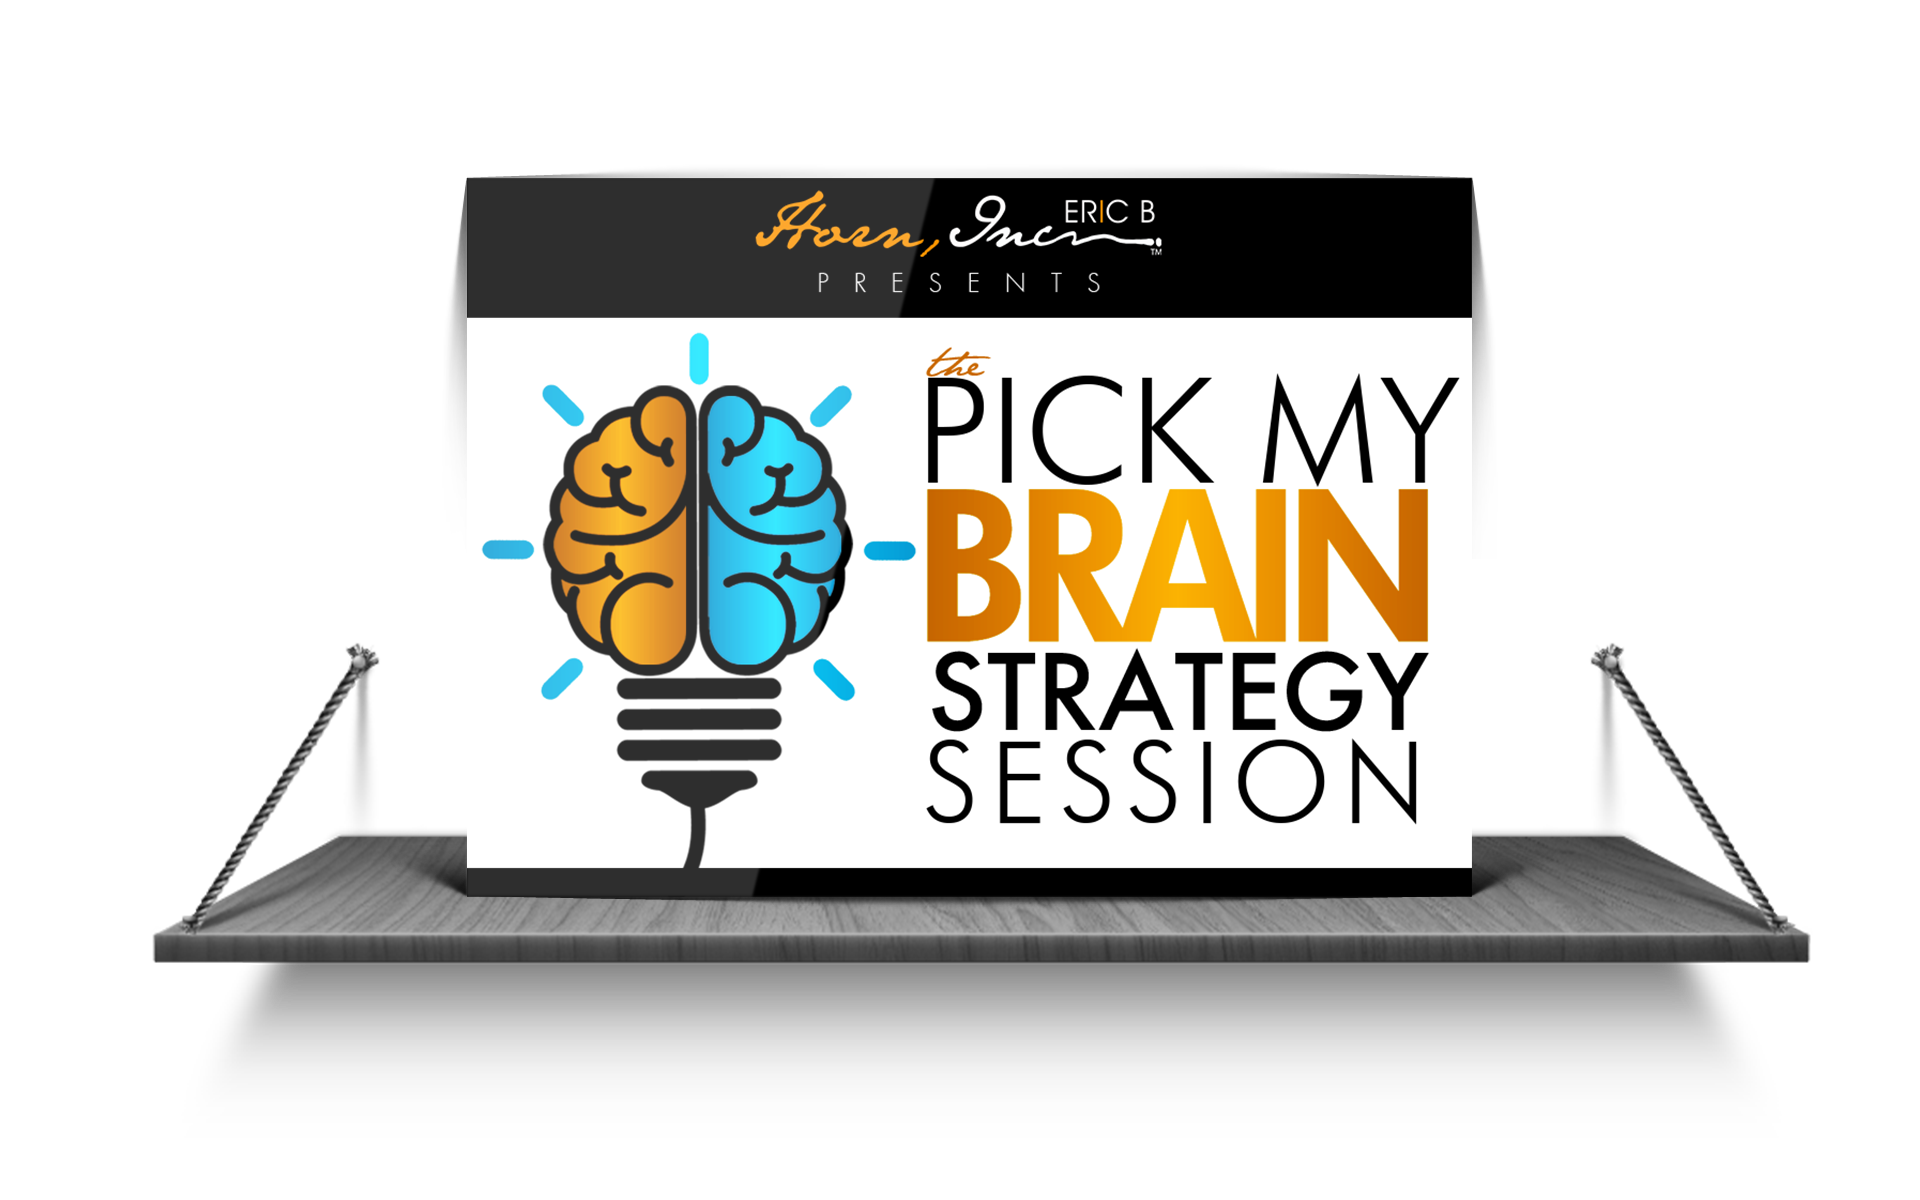 Pick My Brain Strategy Session